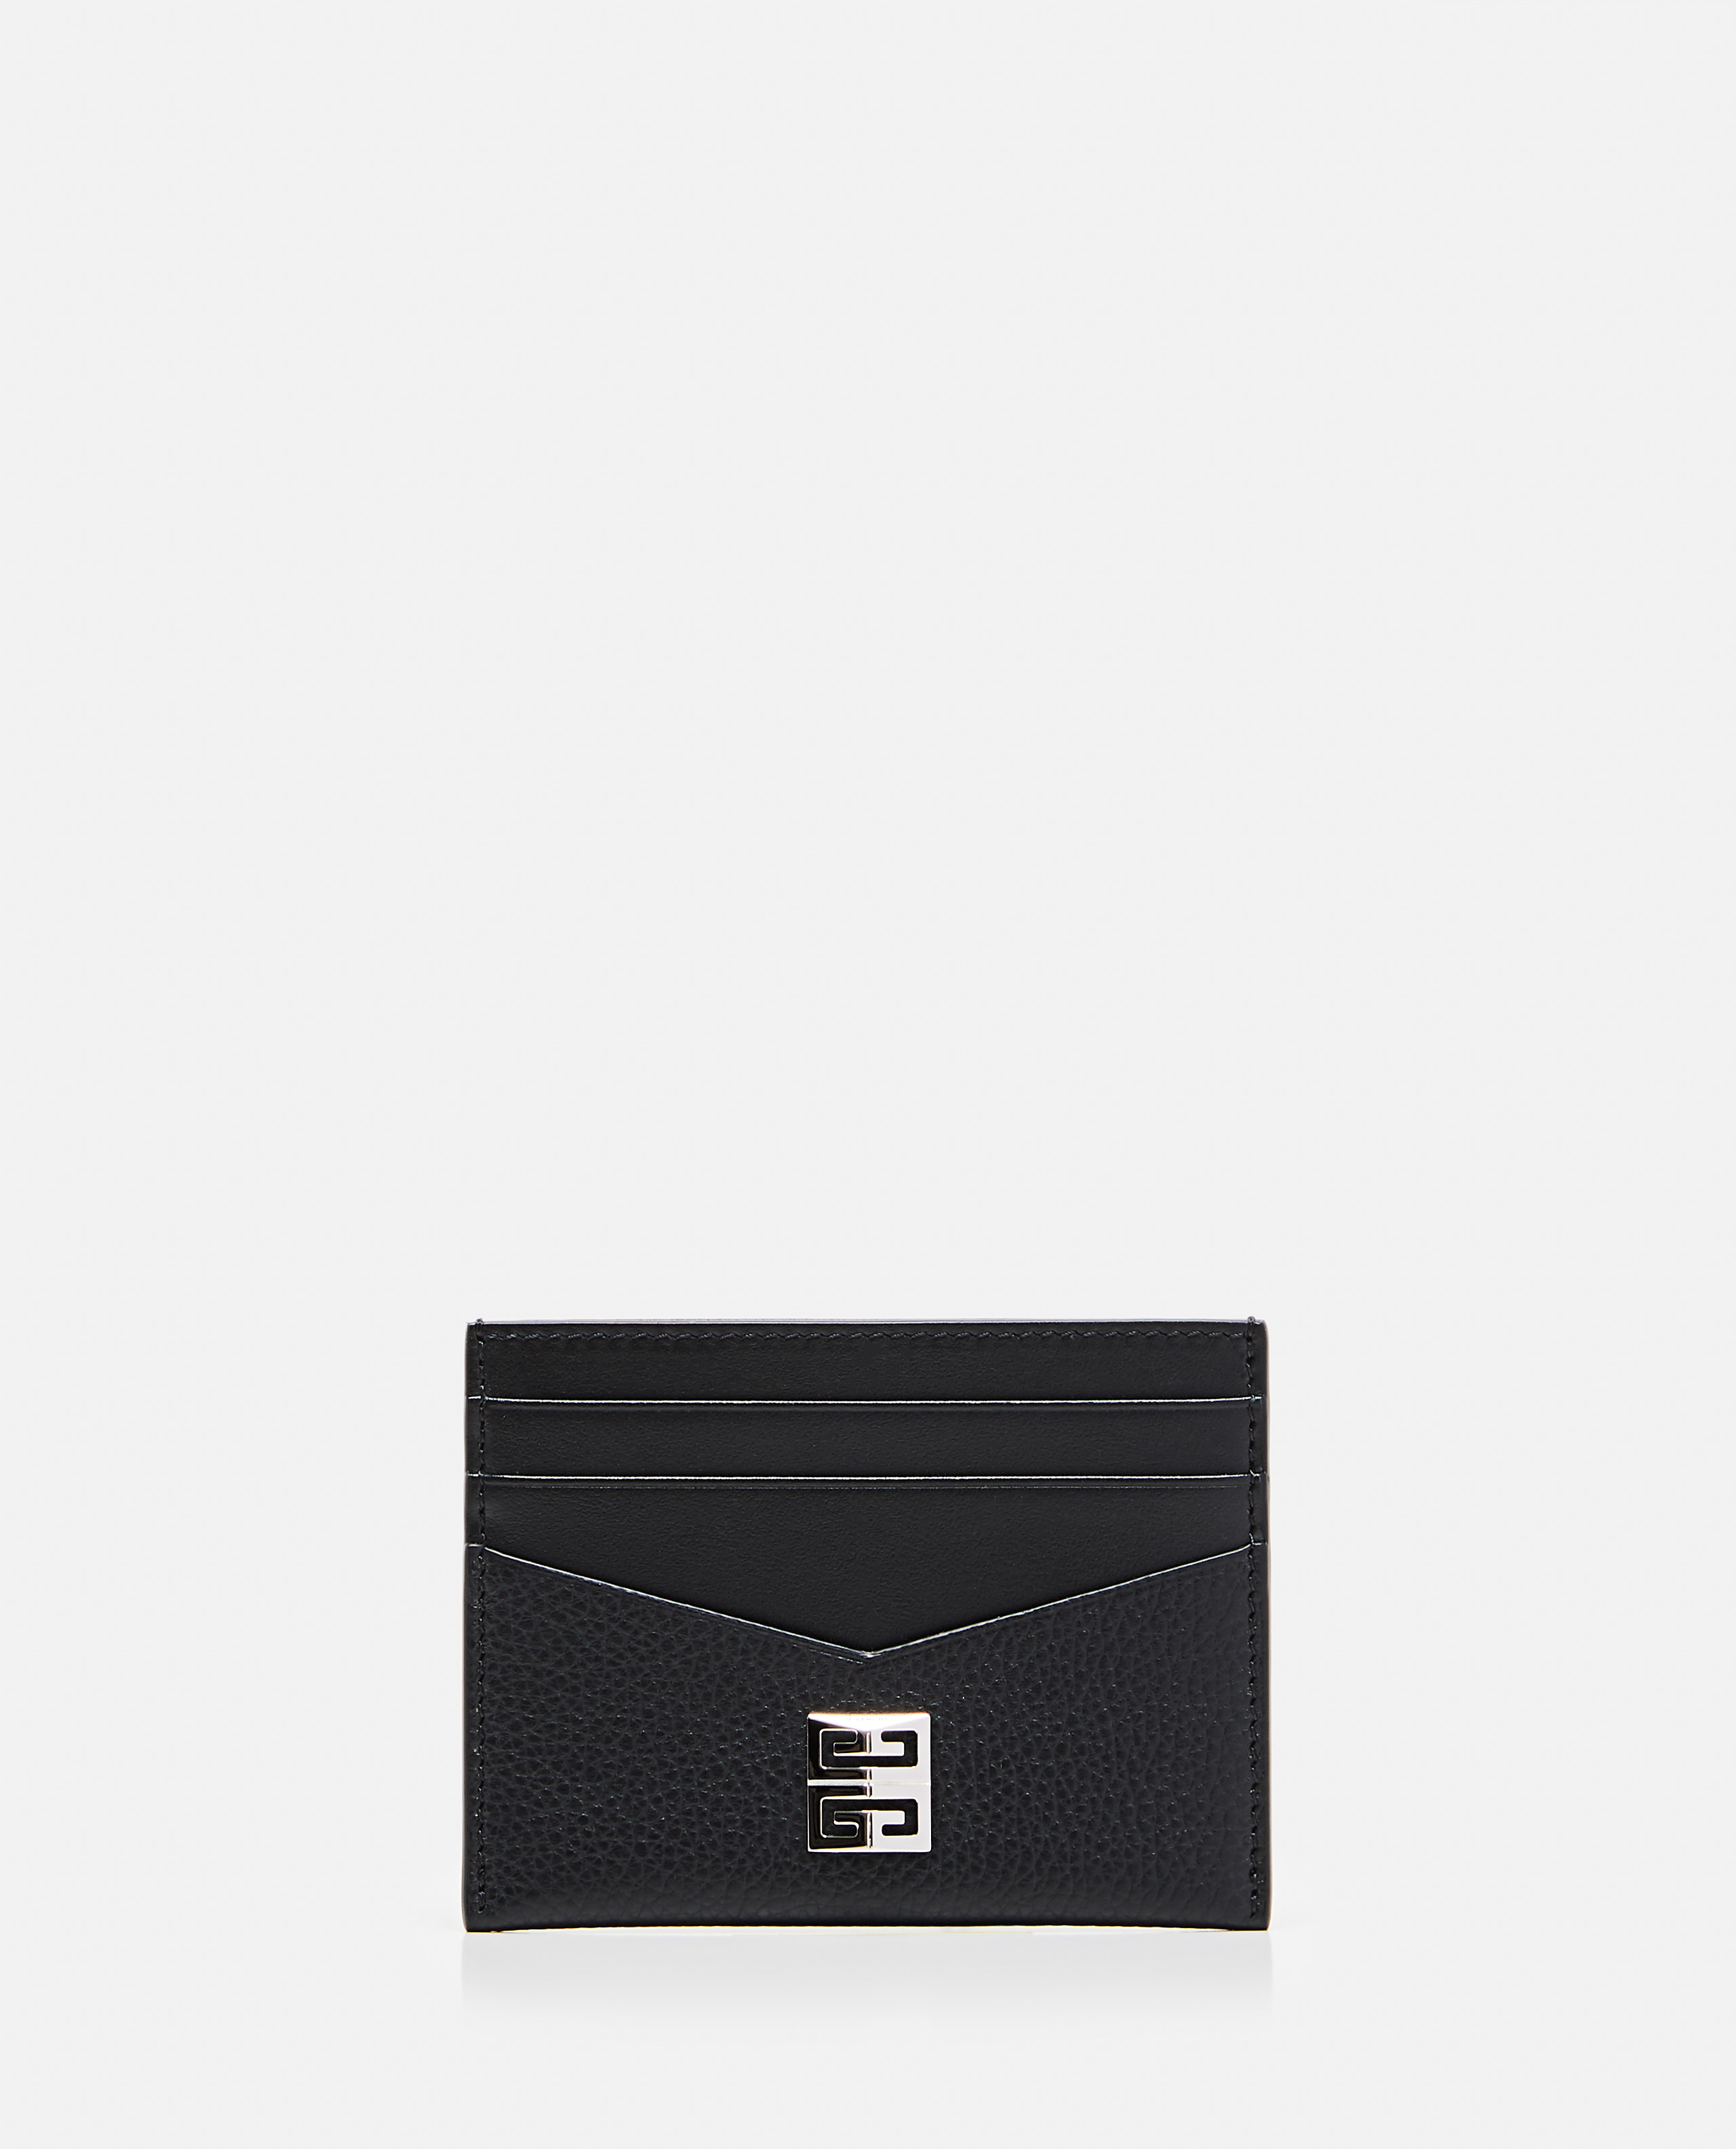 GIVENCHY GIVENCHY GRAINED LEATHER CARD HOLDER